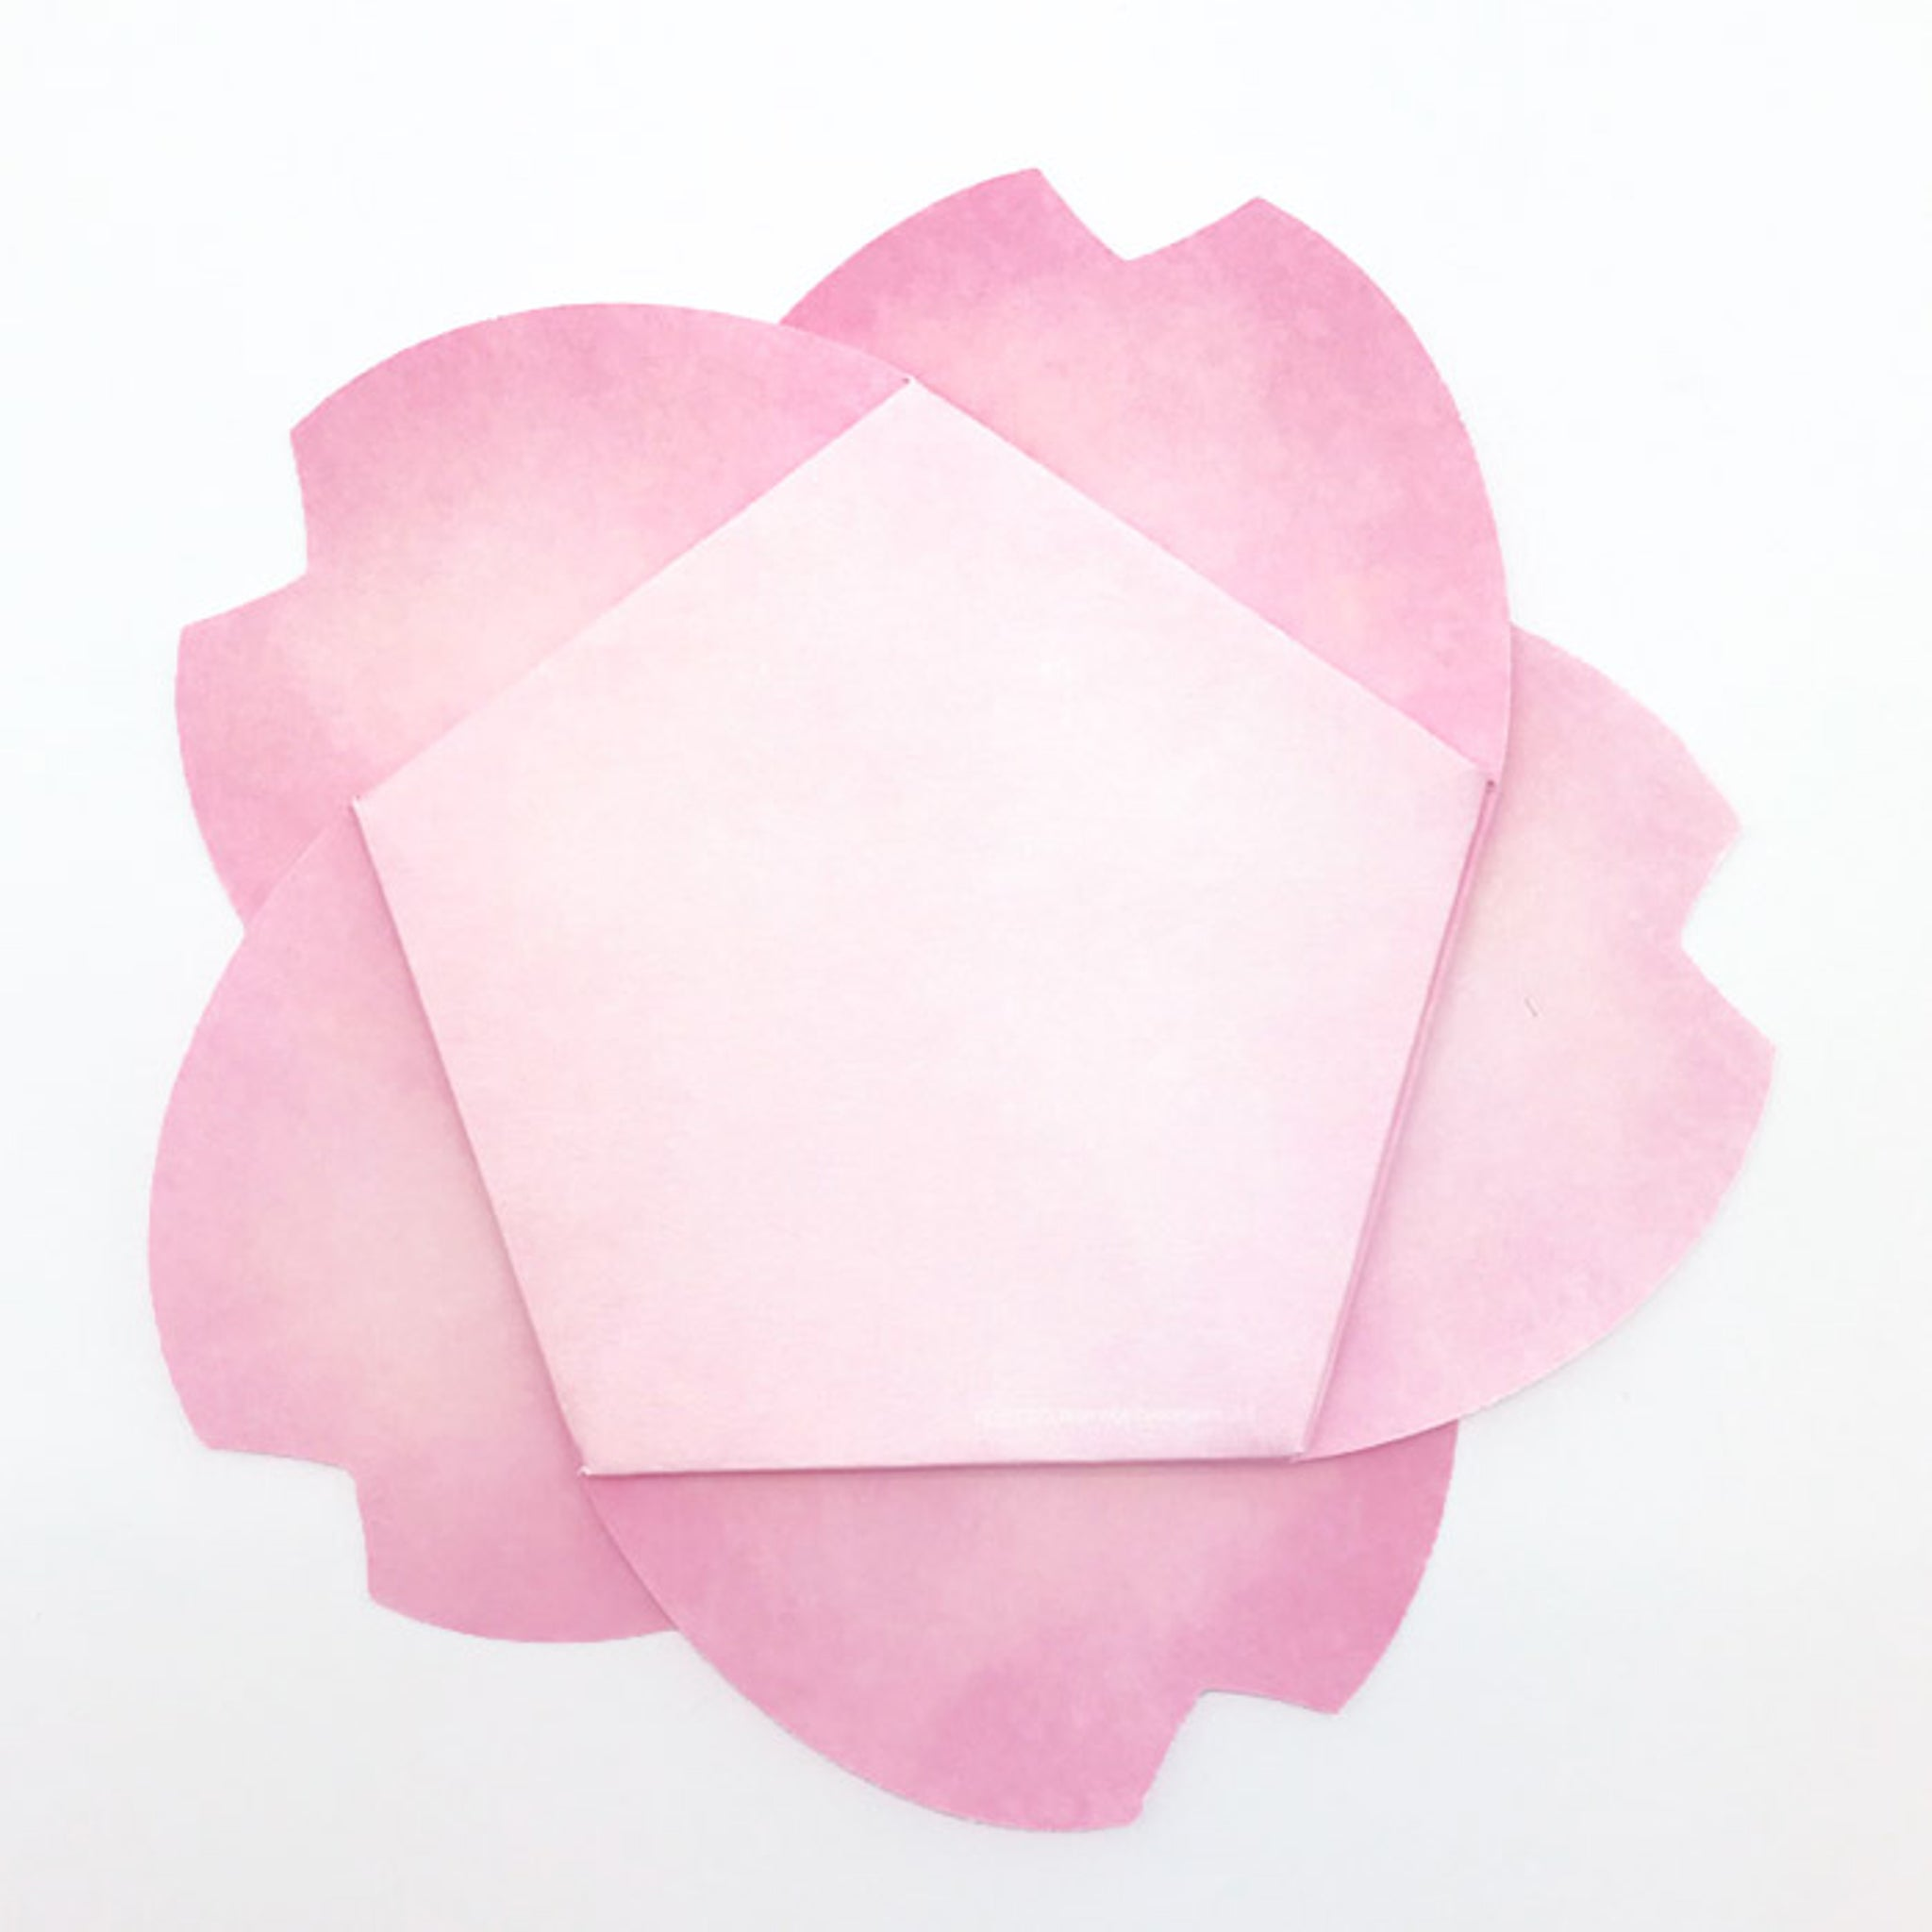 D'Won 3D Pop-up Card - Cherry Blossom (Fold) Dark Pink